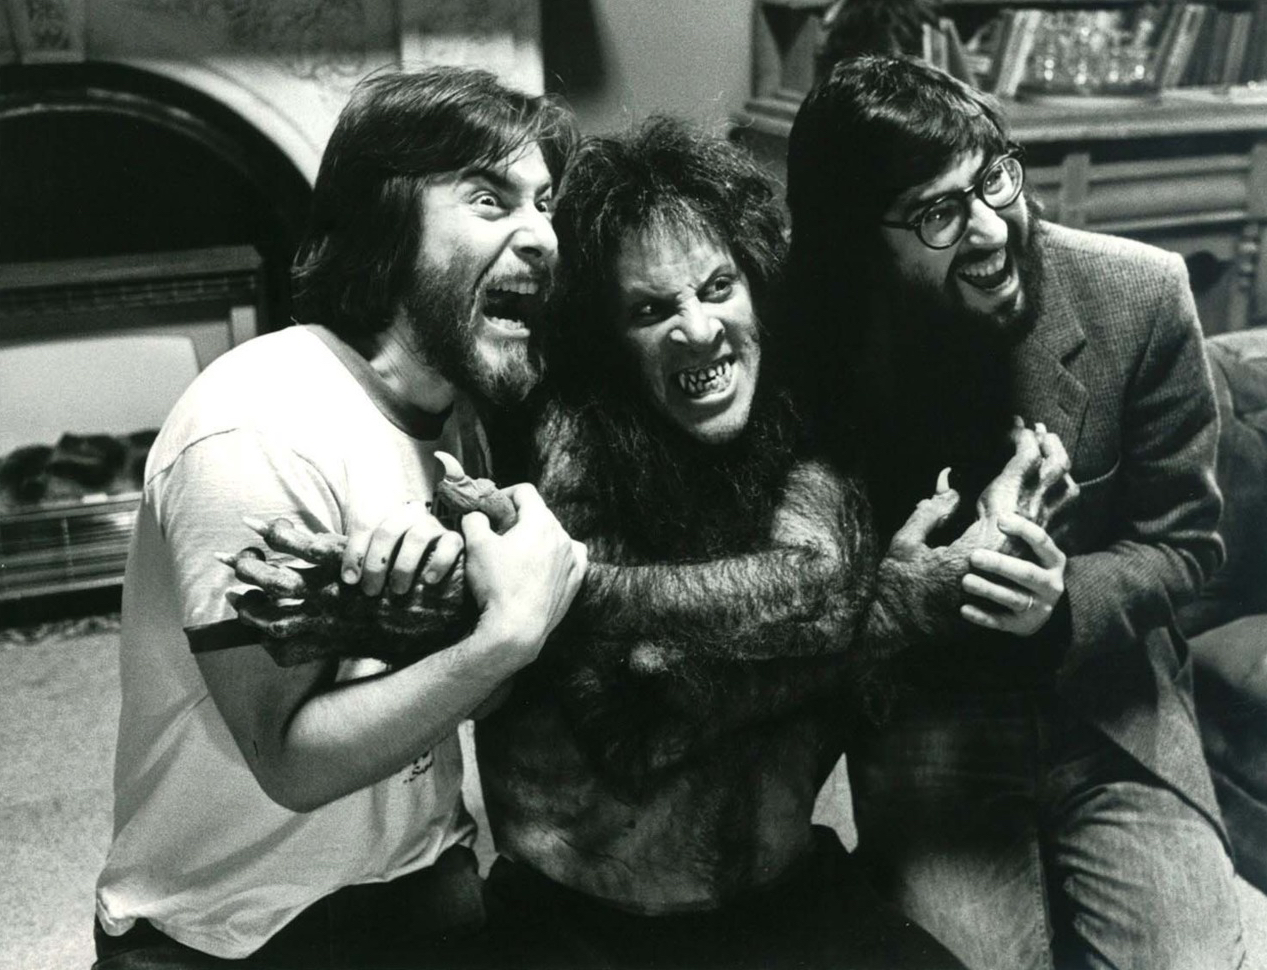 Rick Baker Working On American Werewolf In London - Pic 2.